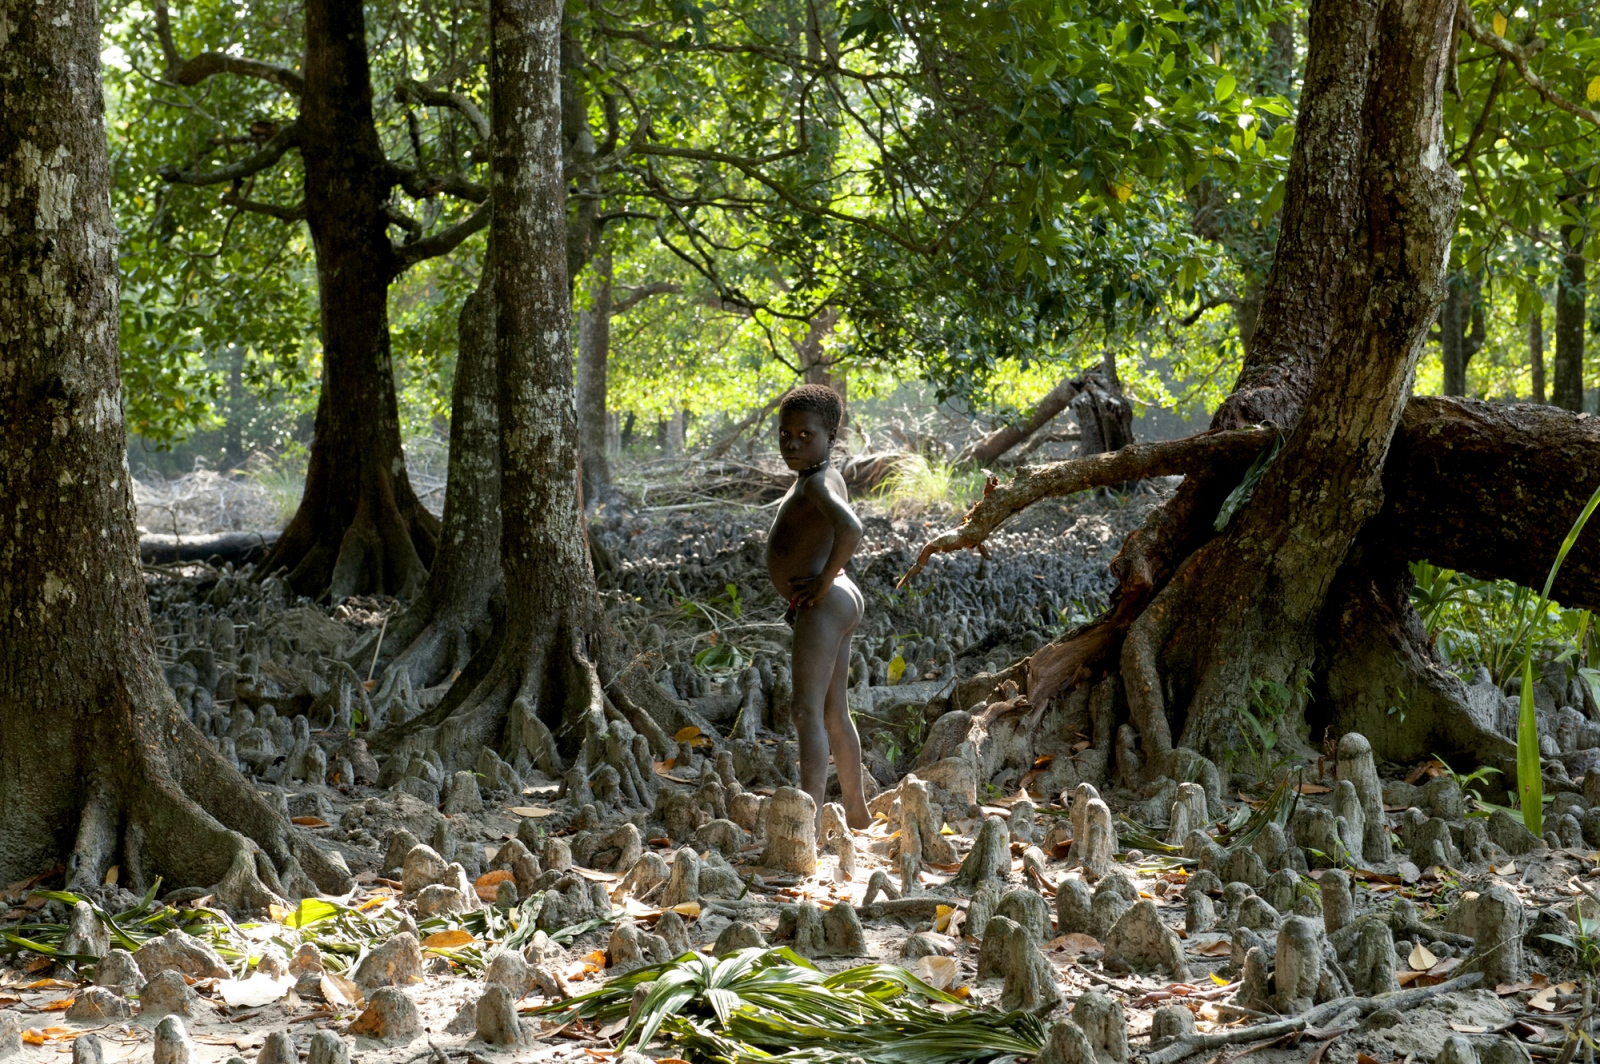 Art and Documentary Photography - Loading jarawa_beilvert_boy_pissing_in_the_jungle.jpg